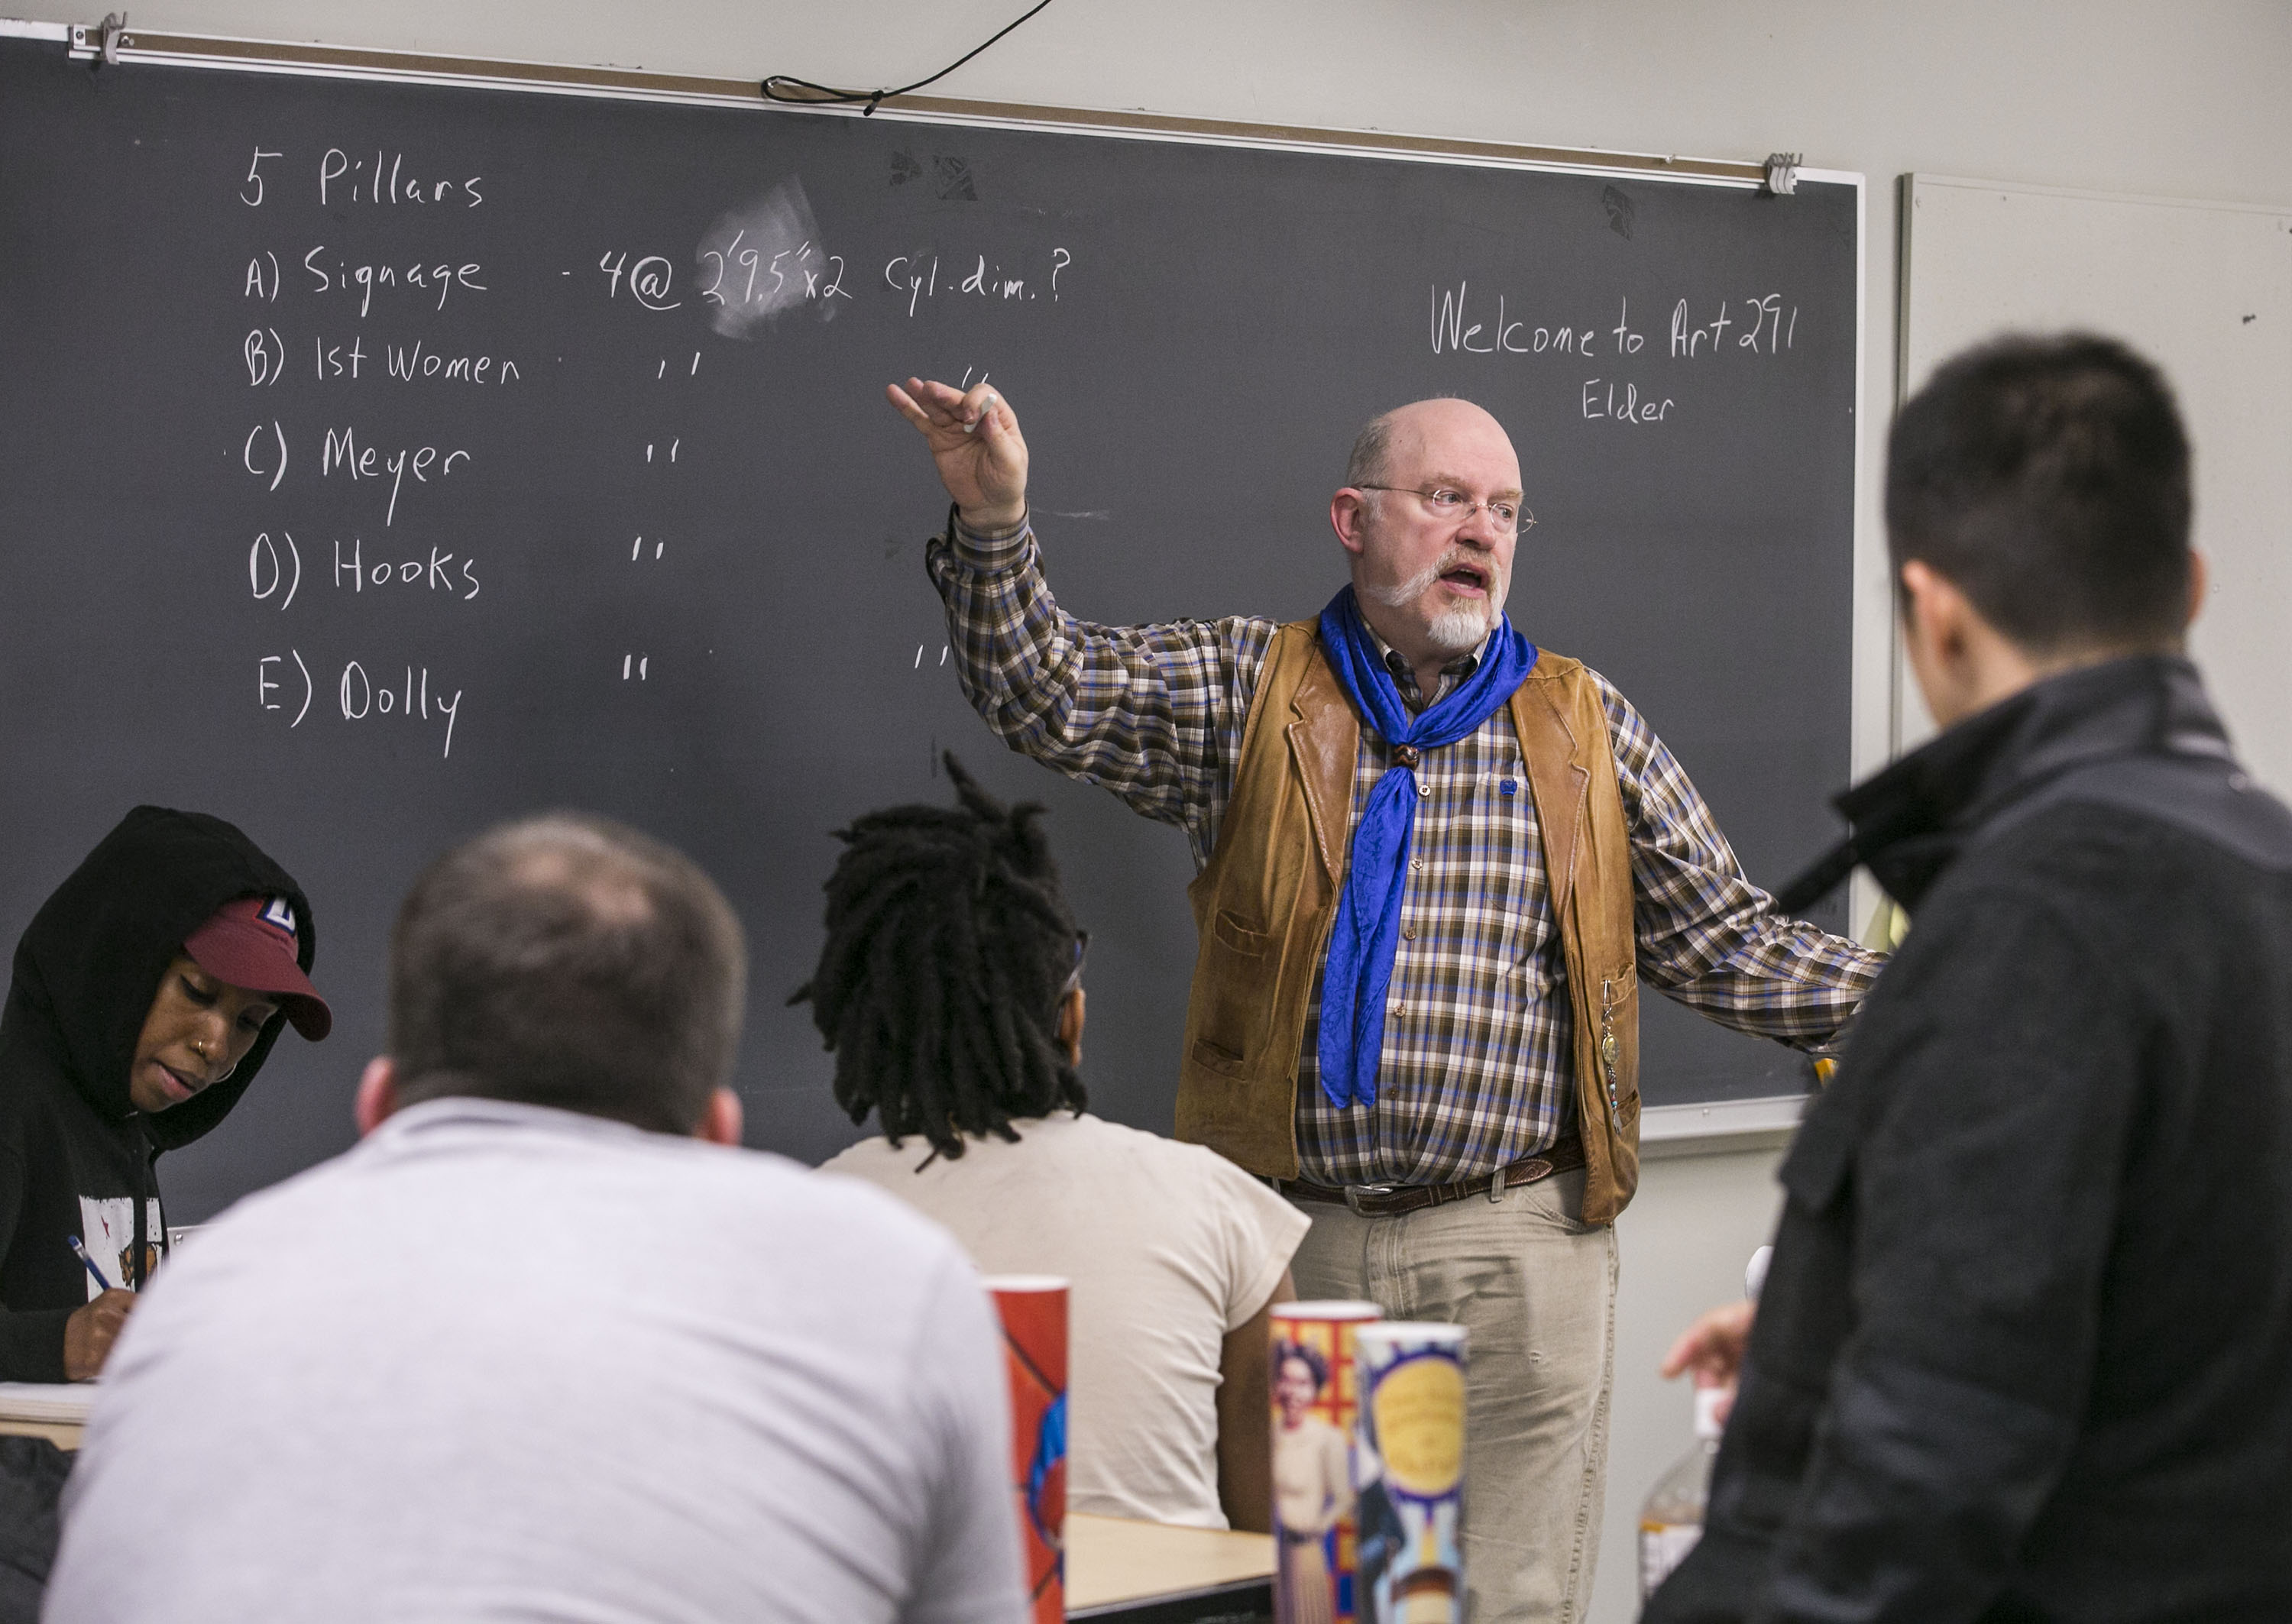 Brother Mark Elder, C.M., instructed DePaul University students on how to create and install public art. As part of their class, Elder and his students created and installed artwork depicting historical figures from DePaul's past. (DePaul University/Jamie Moncrief)